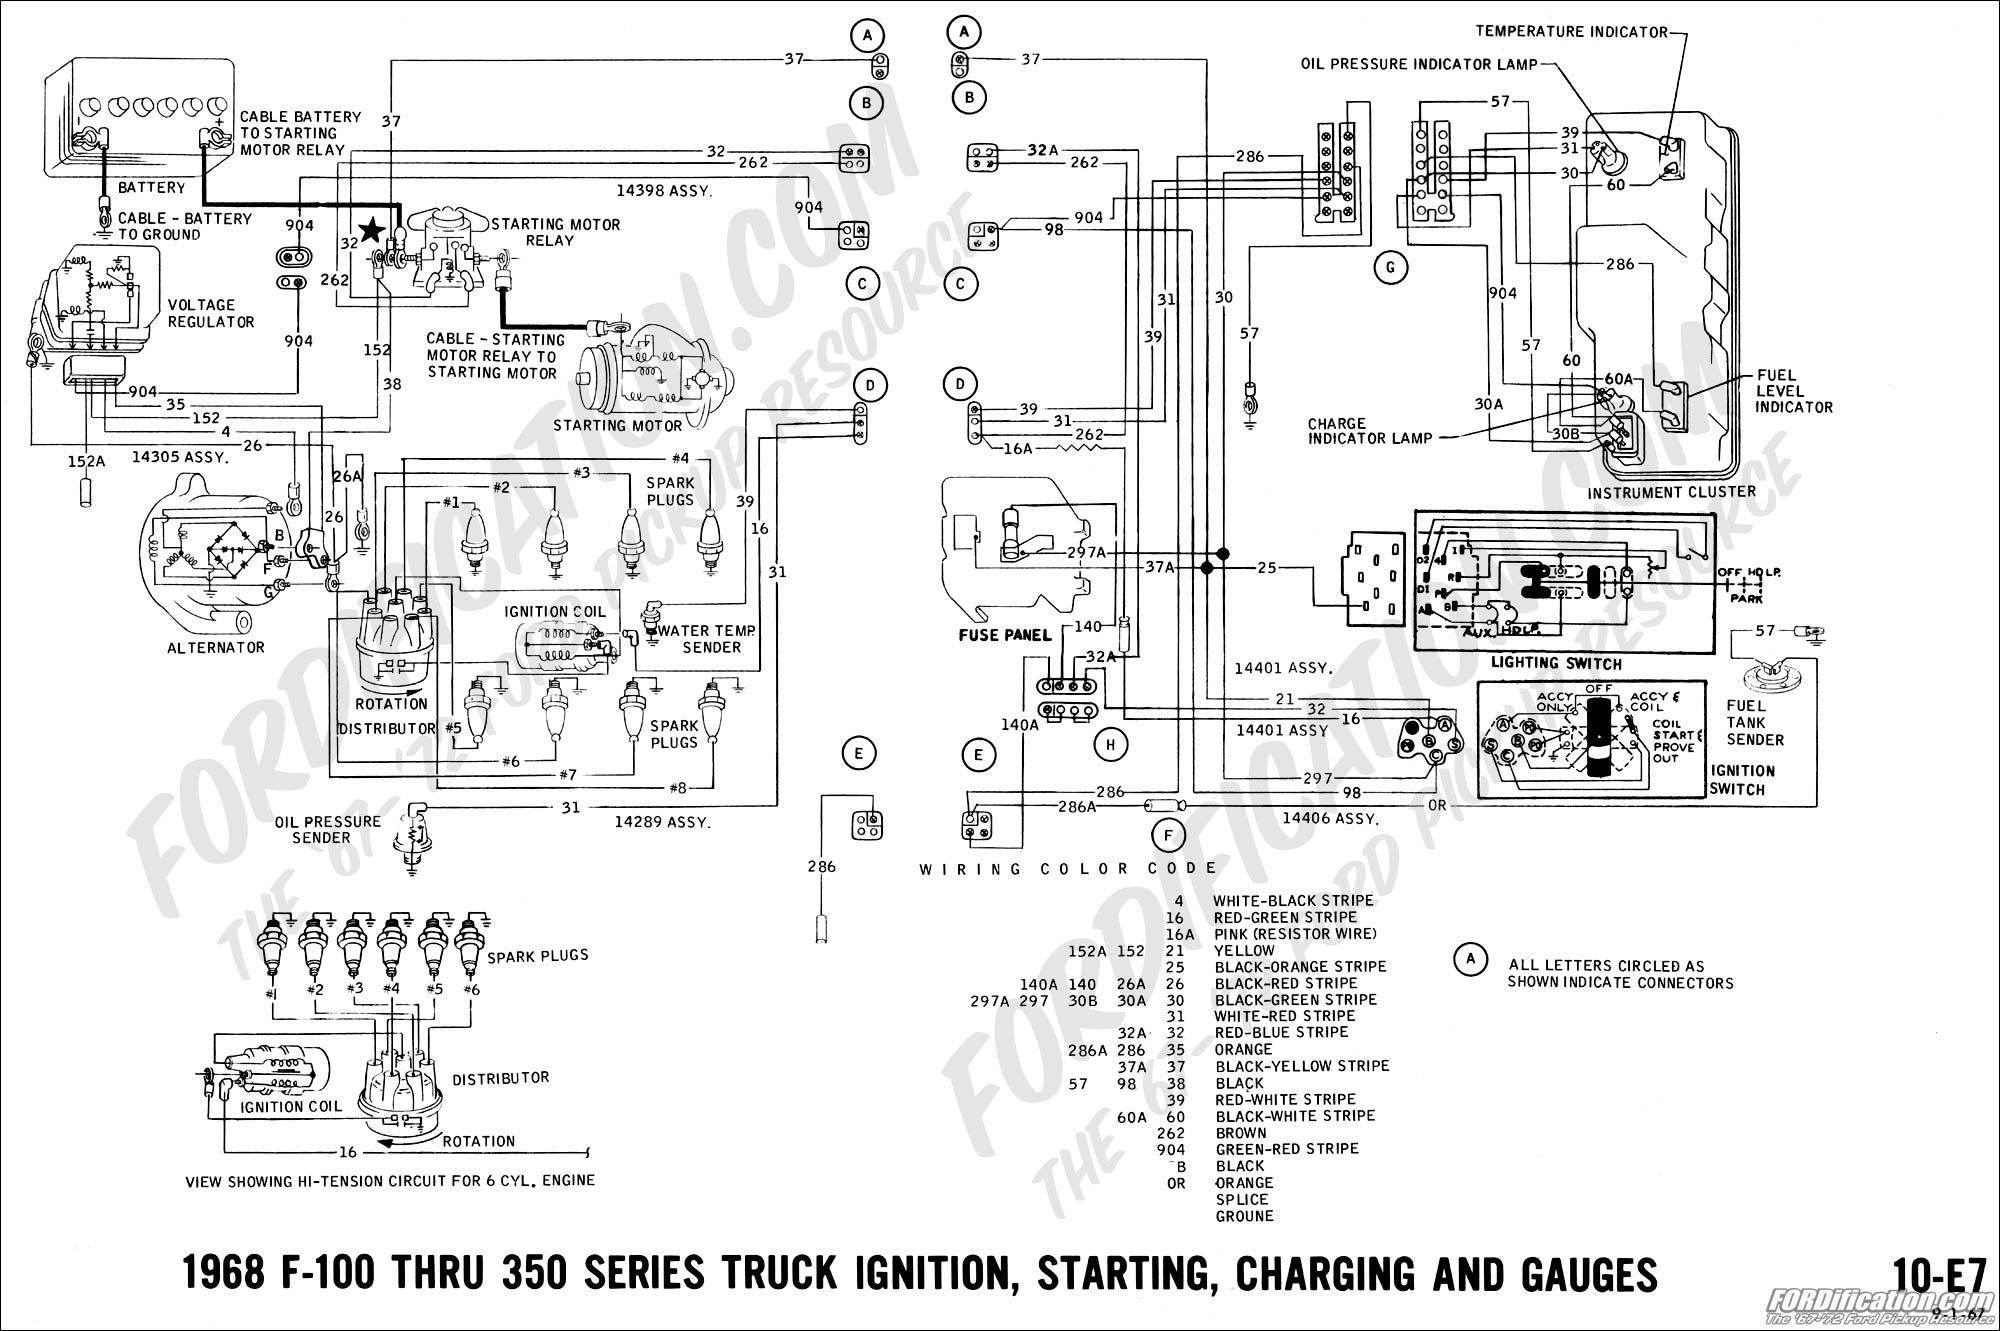 WRG-9599] 1997 Ford Expedition Xlt 5 4l Engine Diagram Pdf on